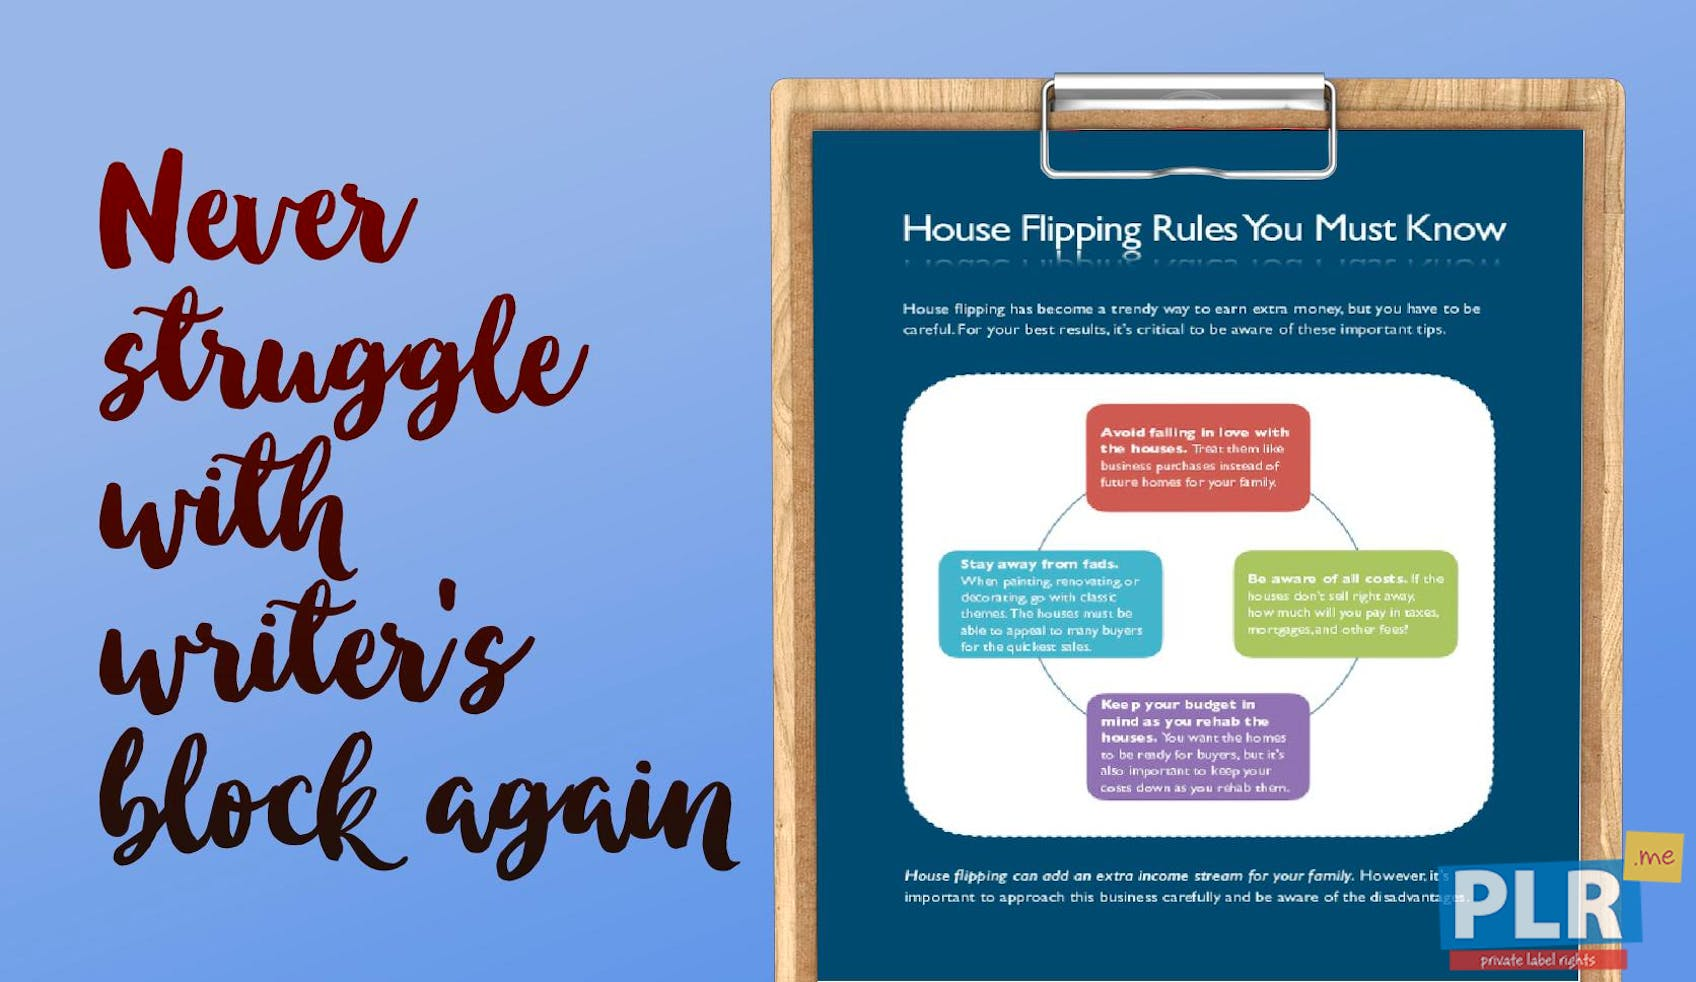 House Flipping Rules You Must Know